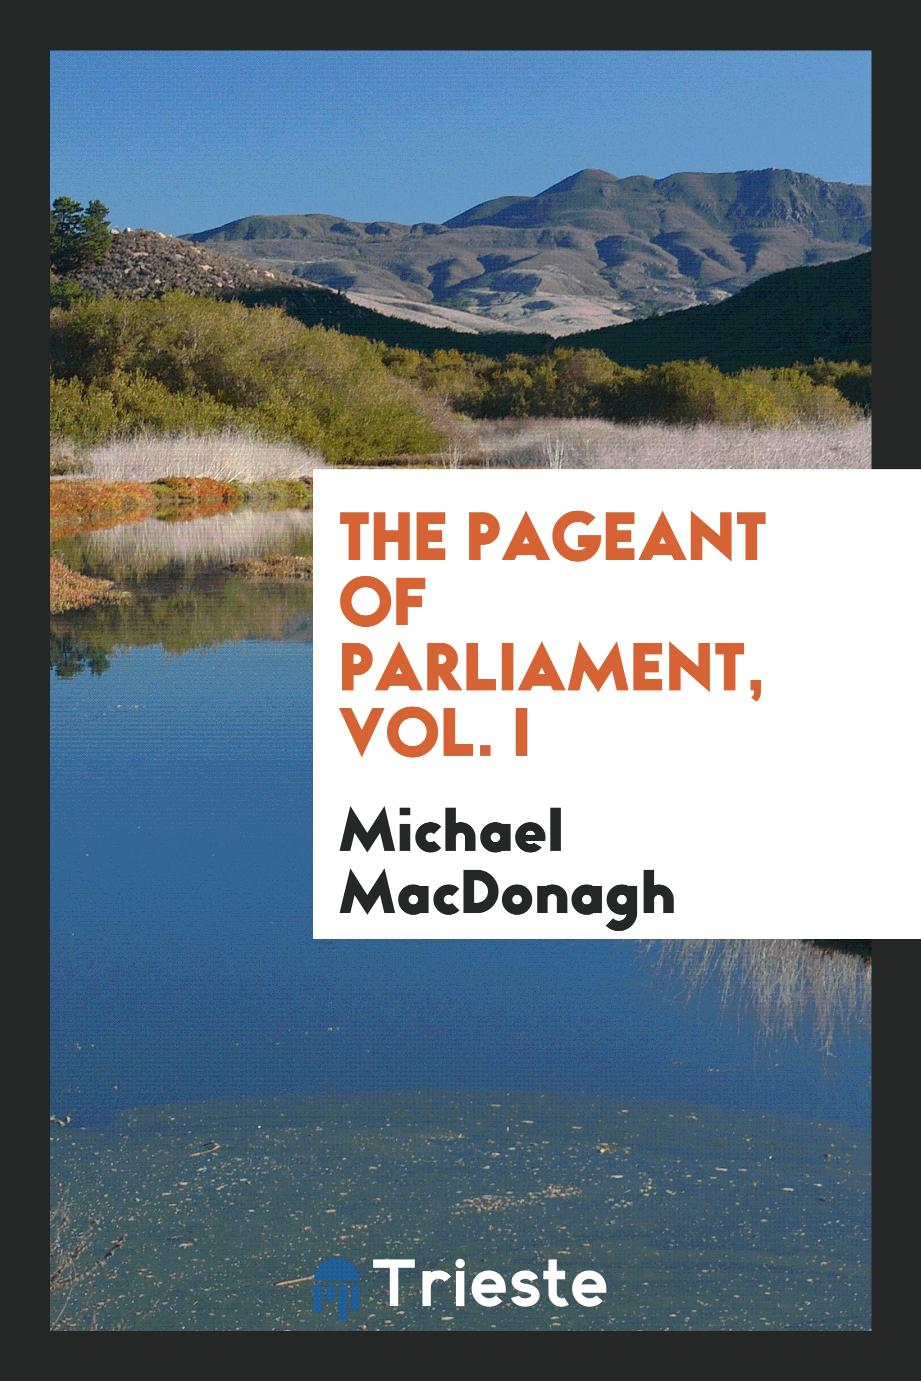 The pageant of Parliament, vol. I